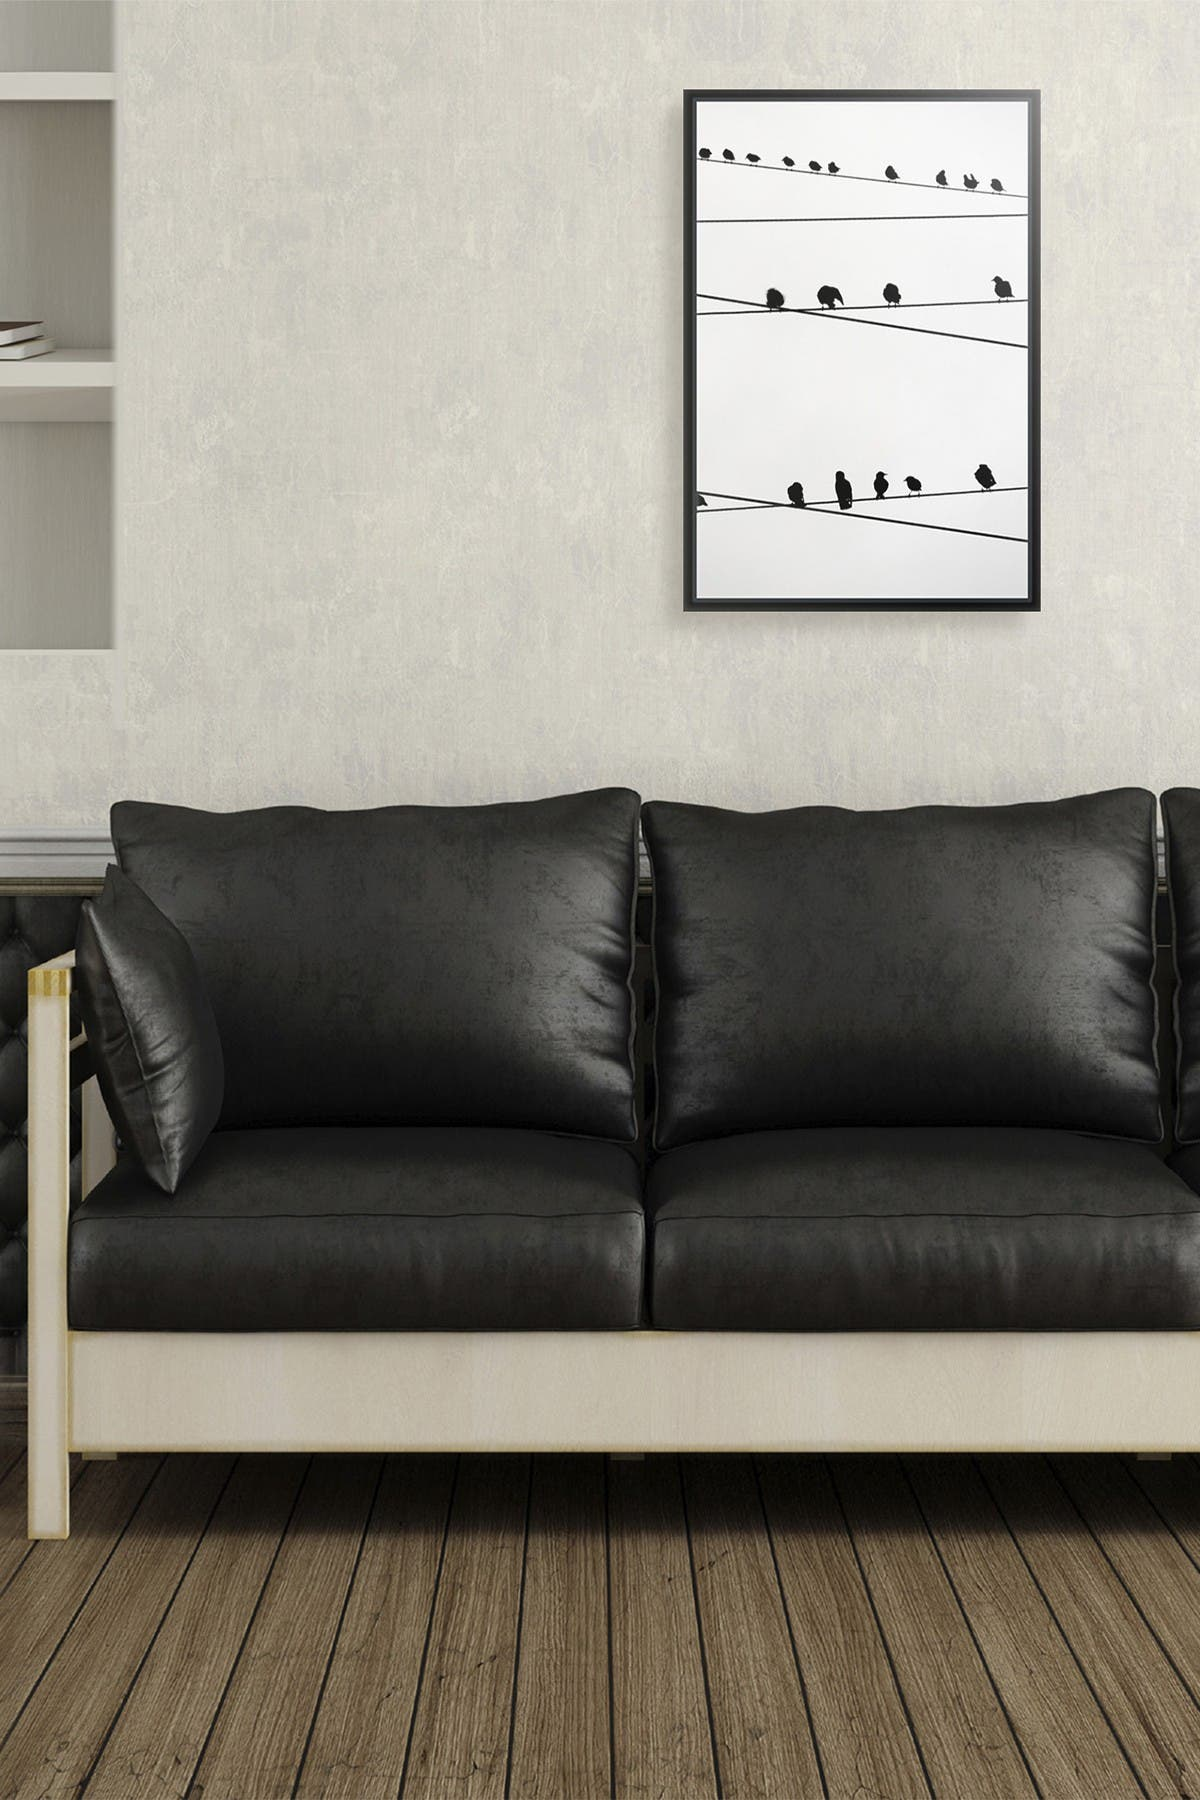 Image of PTM Images Medium Birds on wire Canvas Wall Art